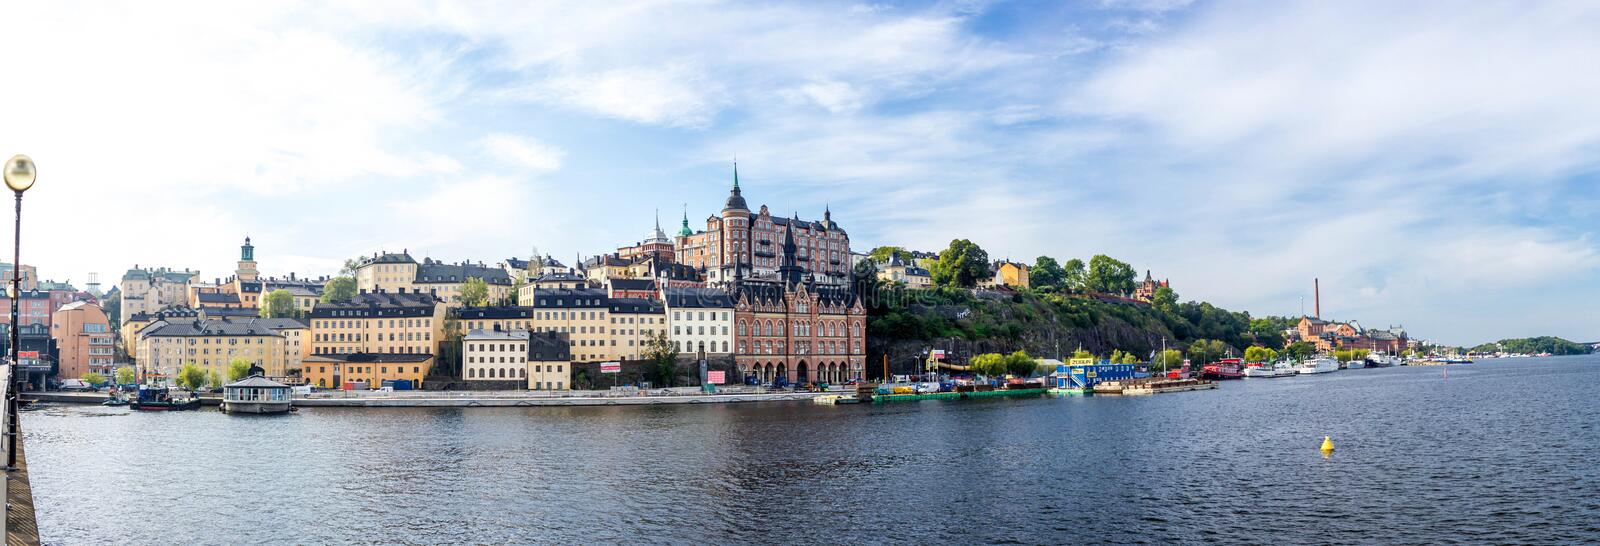 Stockholm images stock